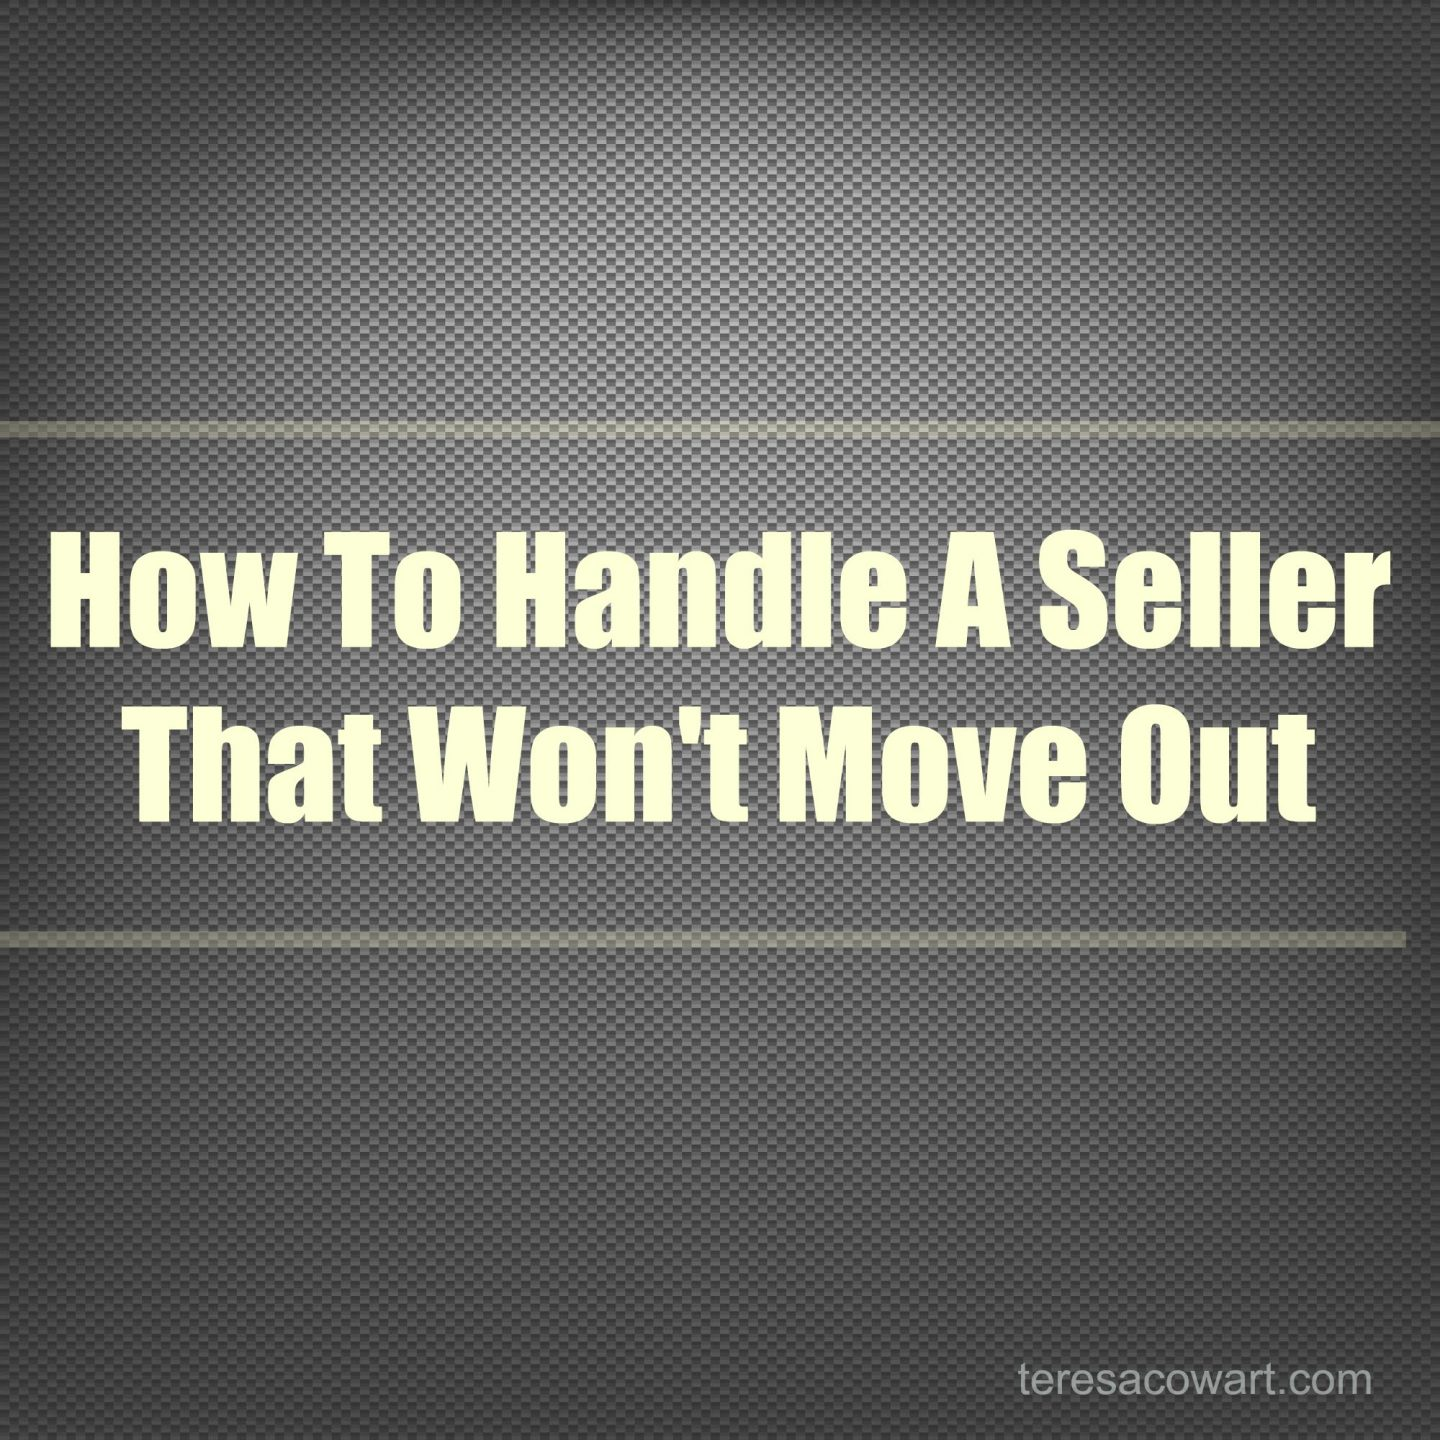 How to Handle a Seller That Wont Move Out